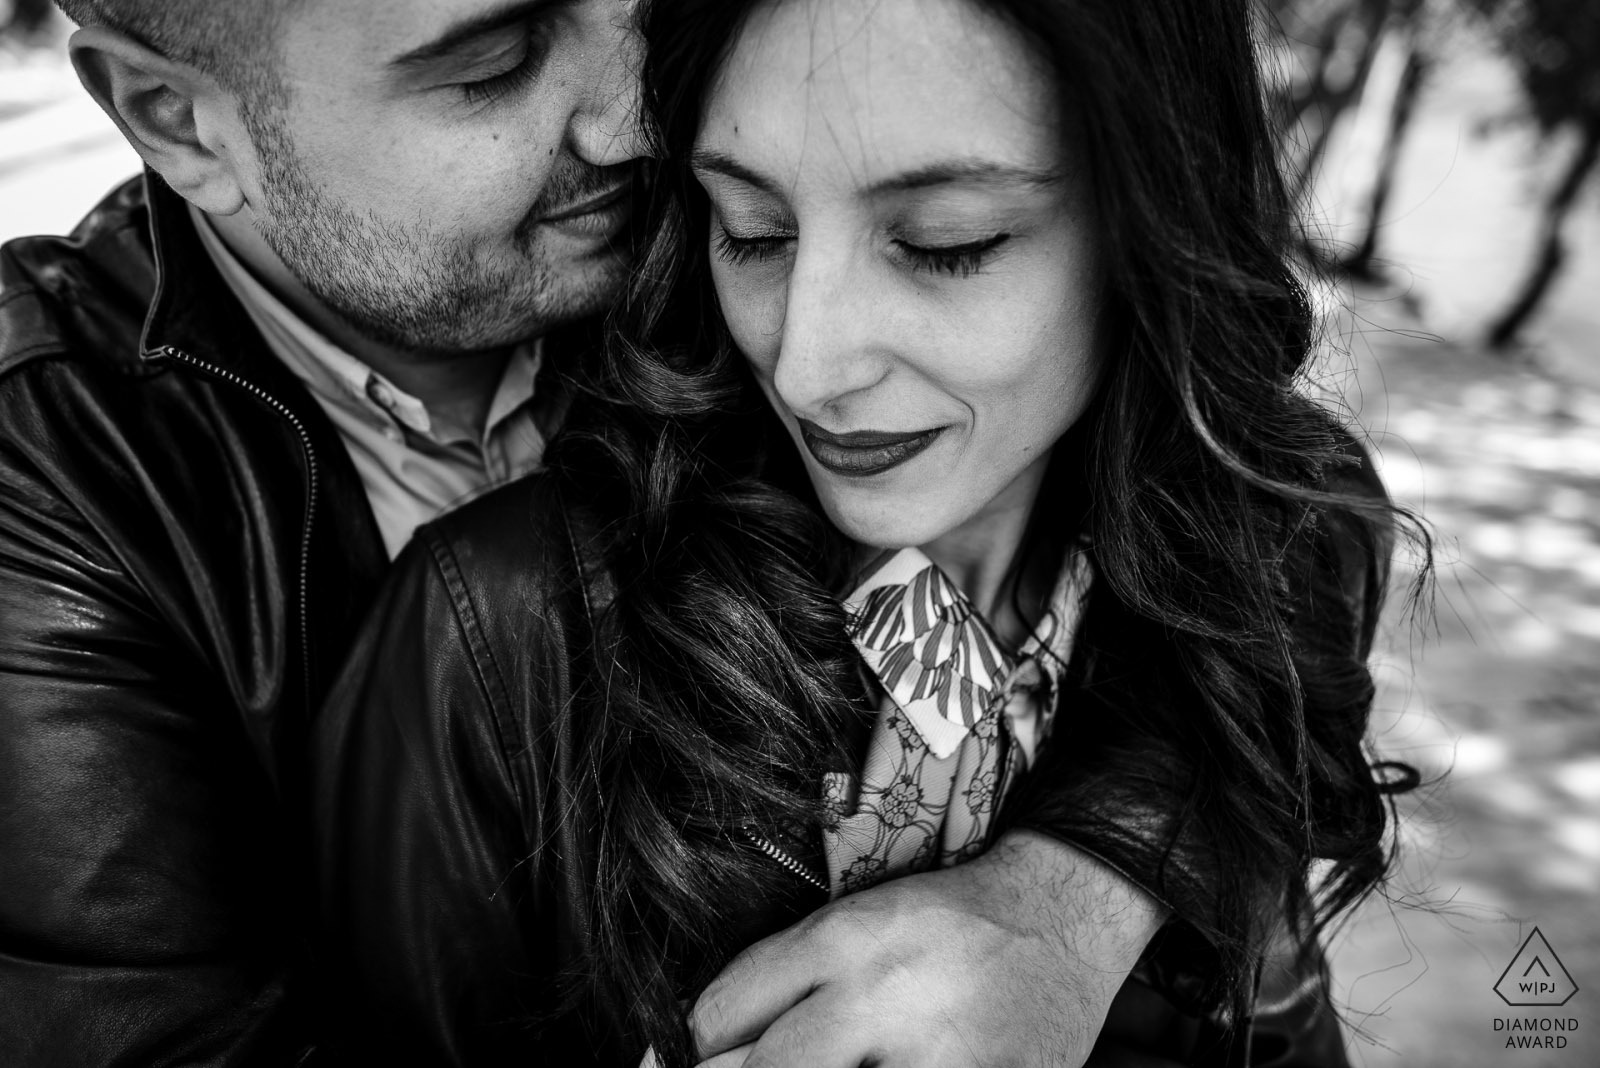 engagement-photo-shoot-session-2582731-1